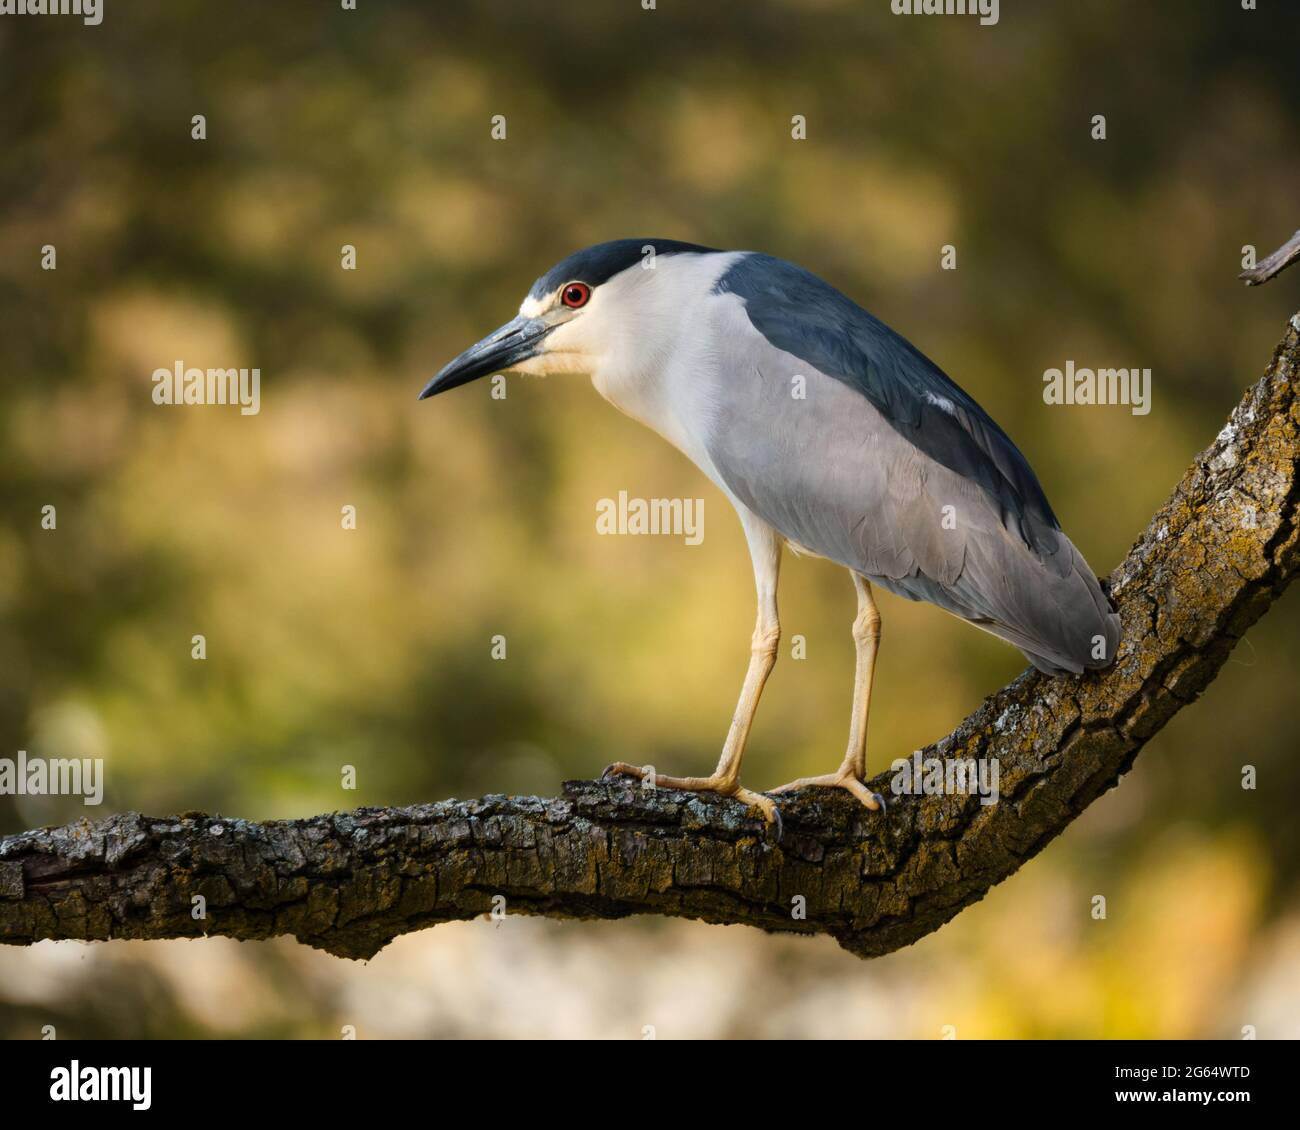 a-black-crowned-night-heron-nycticorax-nycticorax-in-profile-perched-on-a-large-branch-2G64WTD.jpg